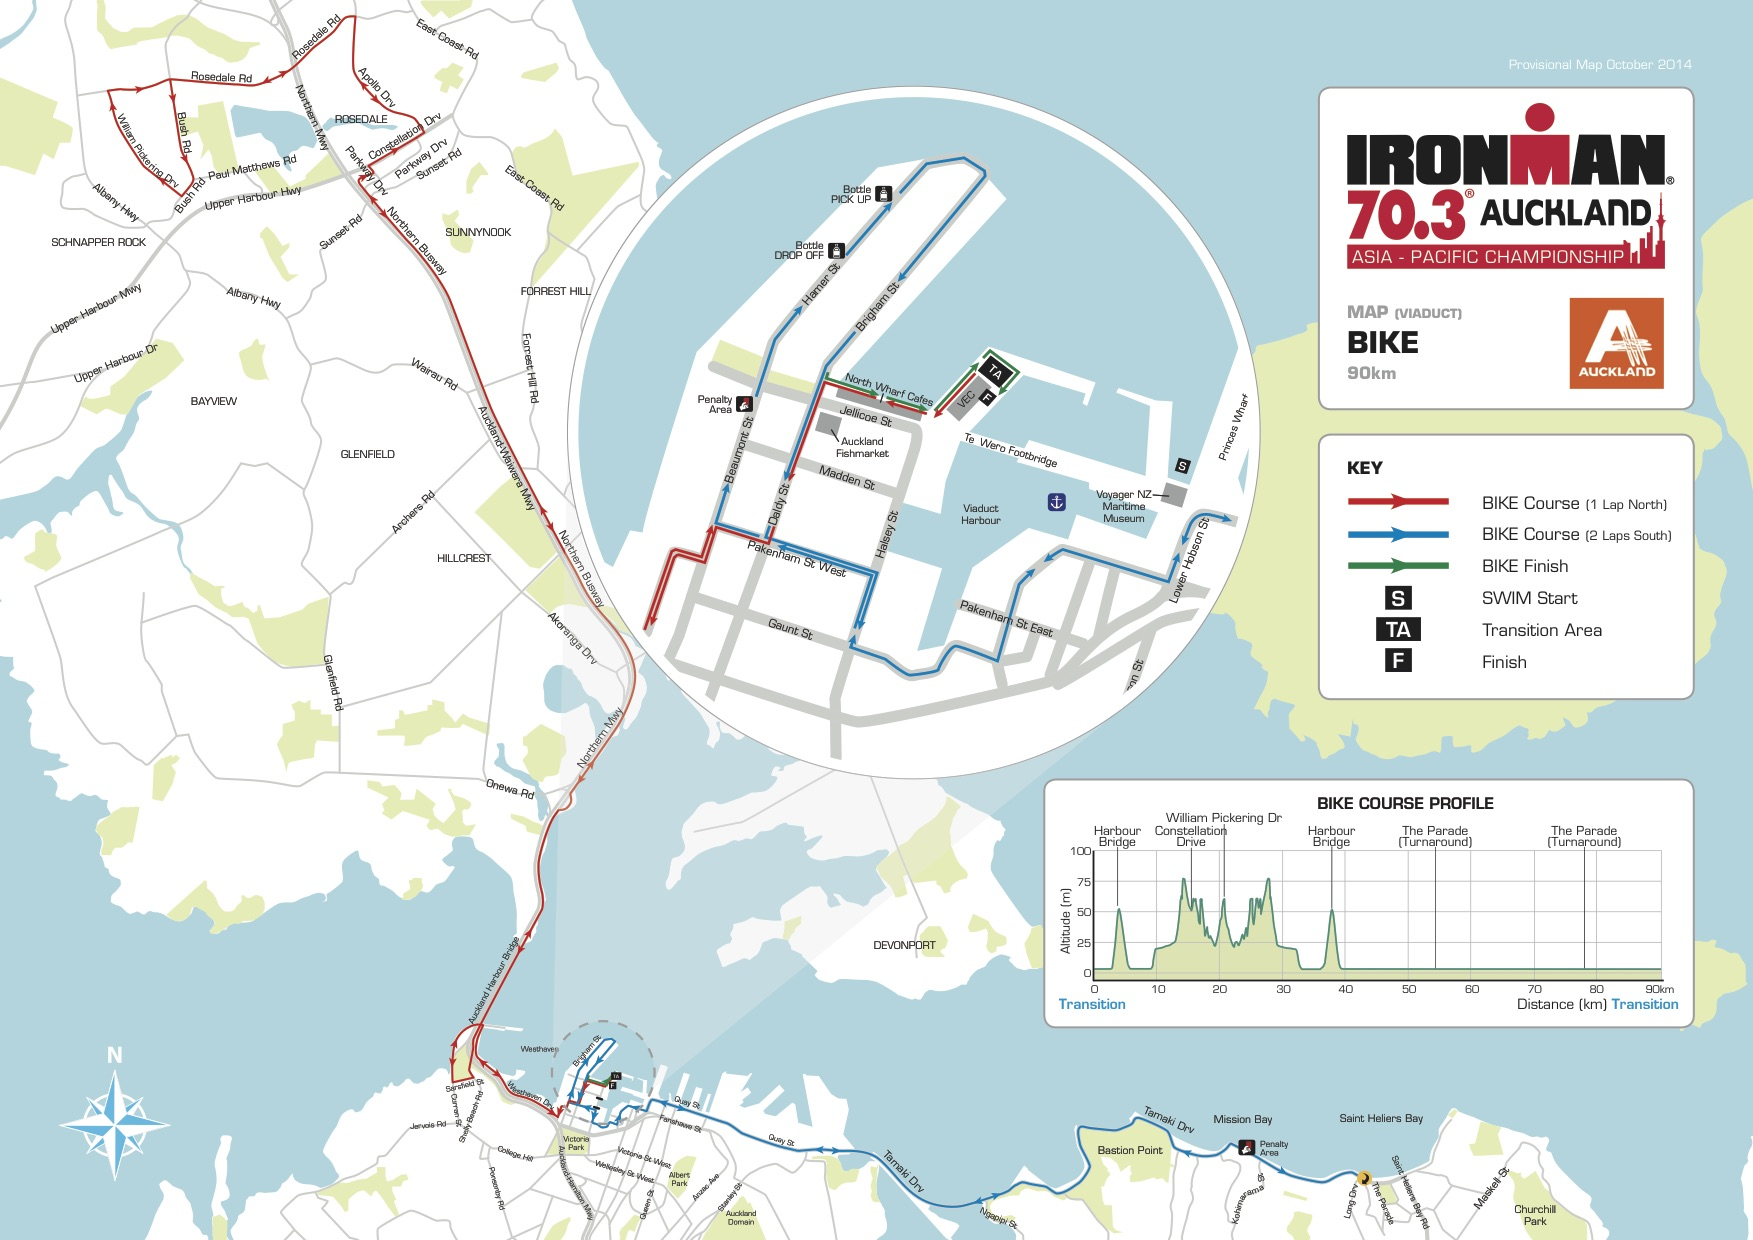 703 auckland bike map